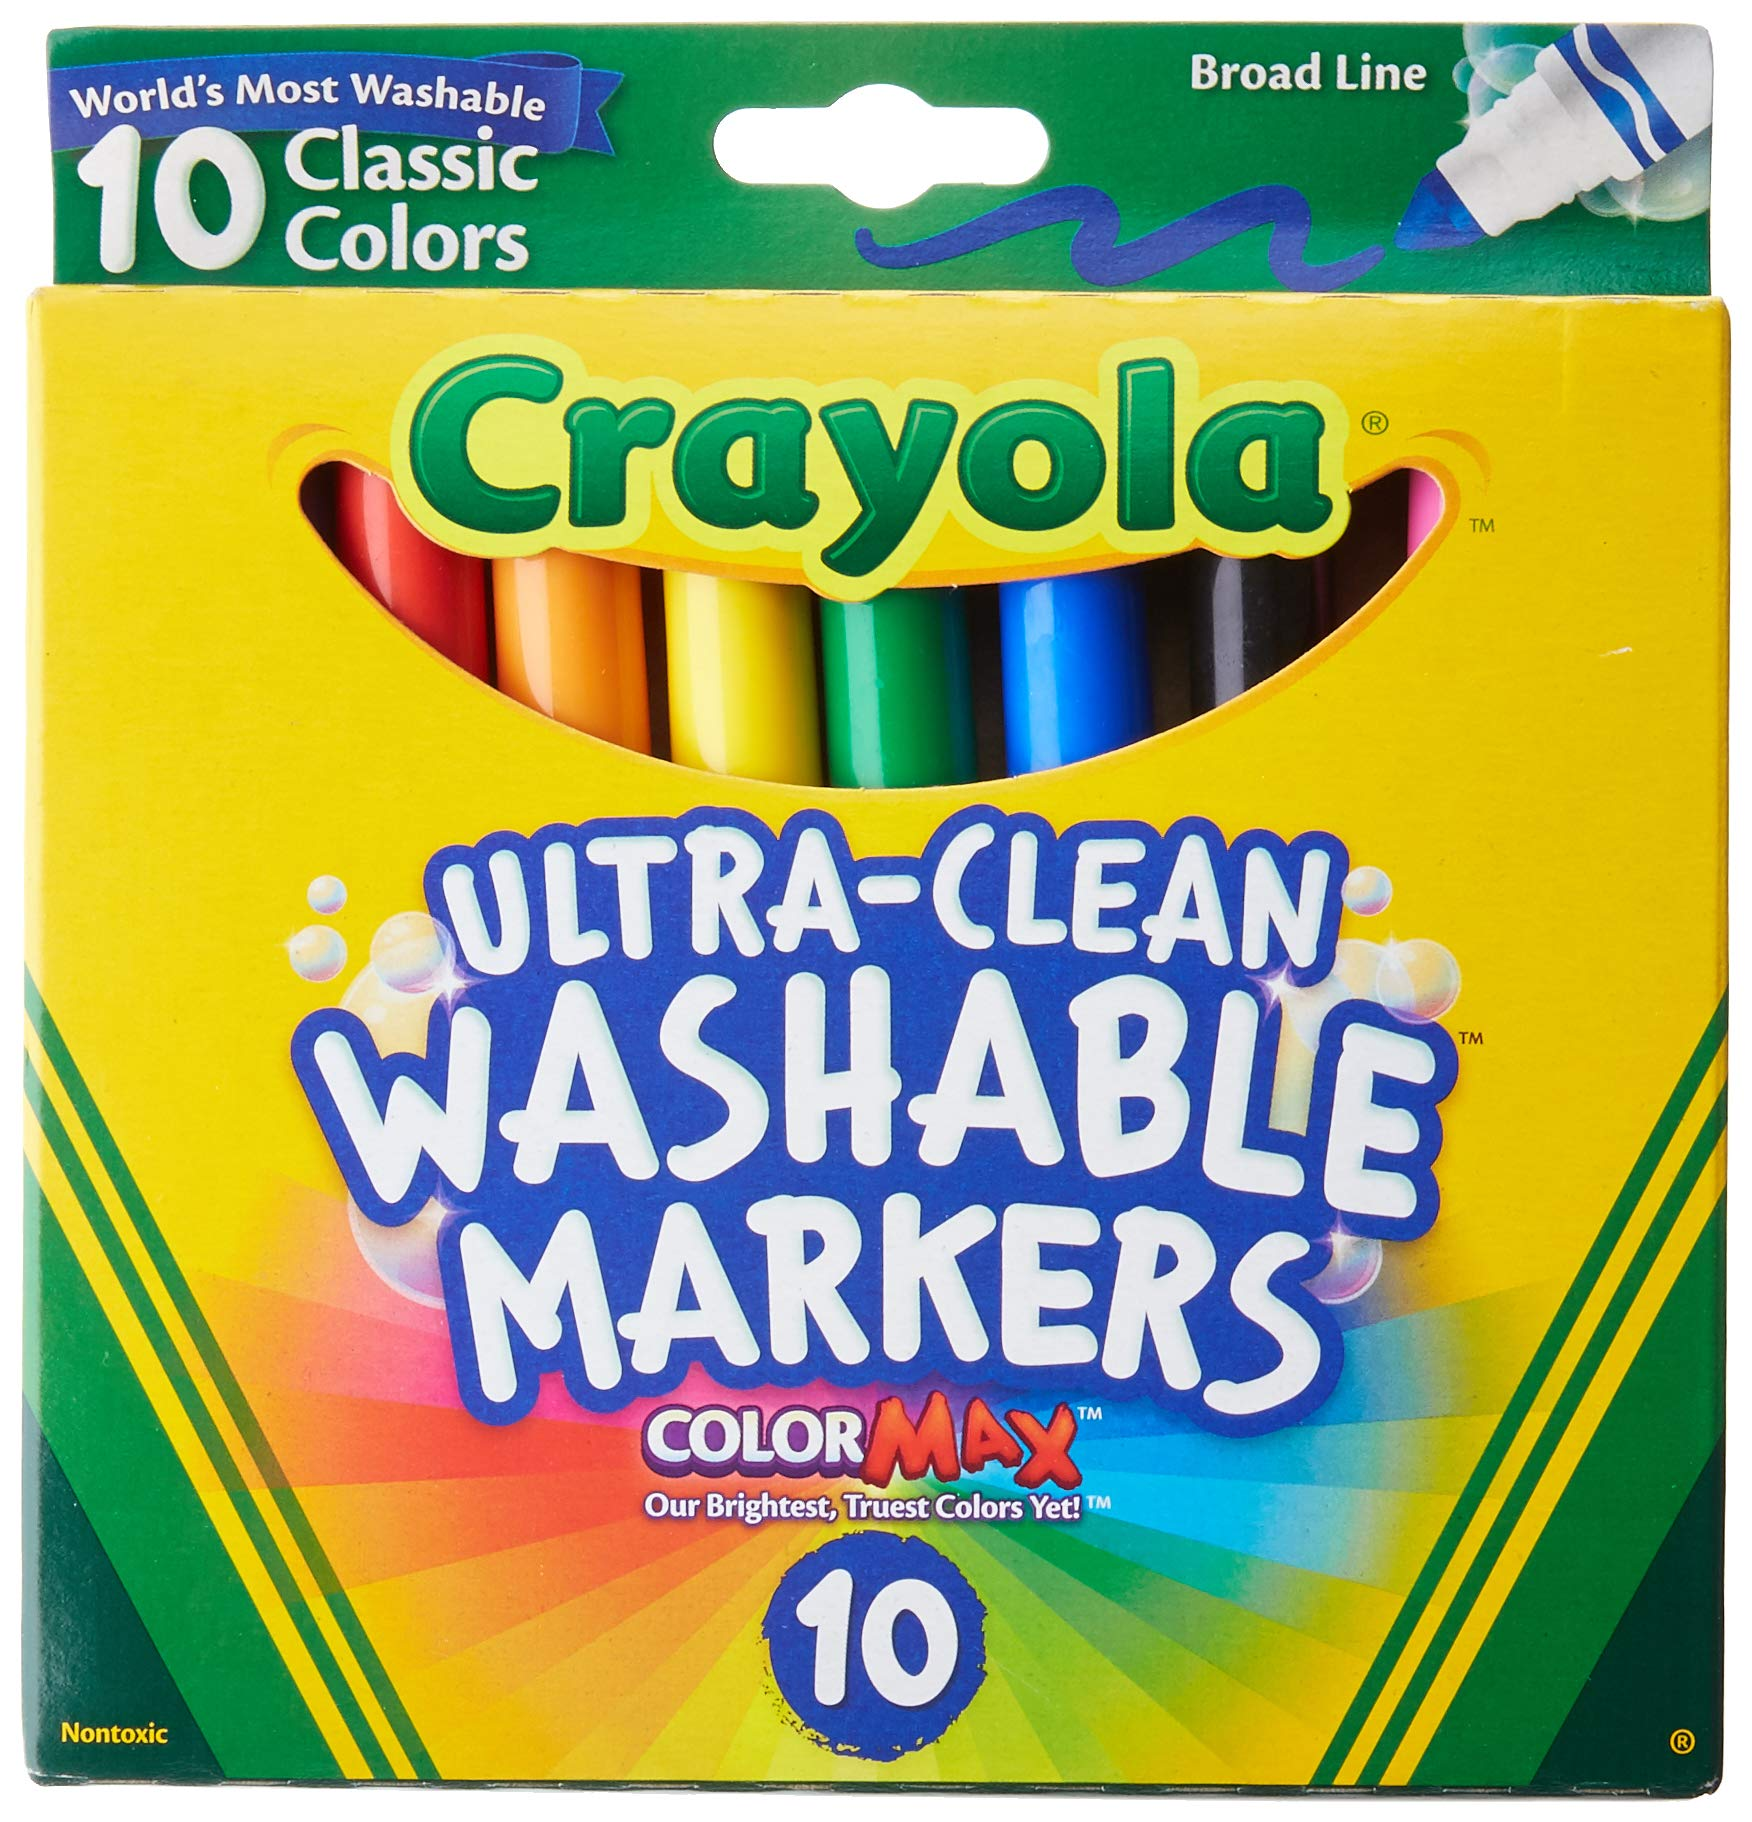 Crayola Ultraclean Broadline Classic Washable Markers (2-Pack) by Crayola